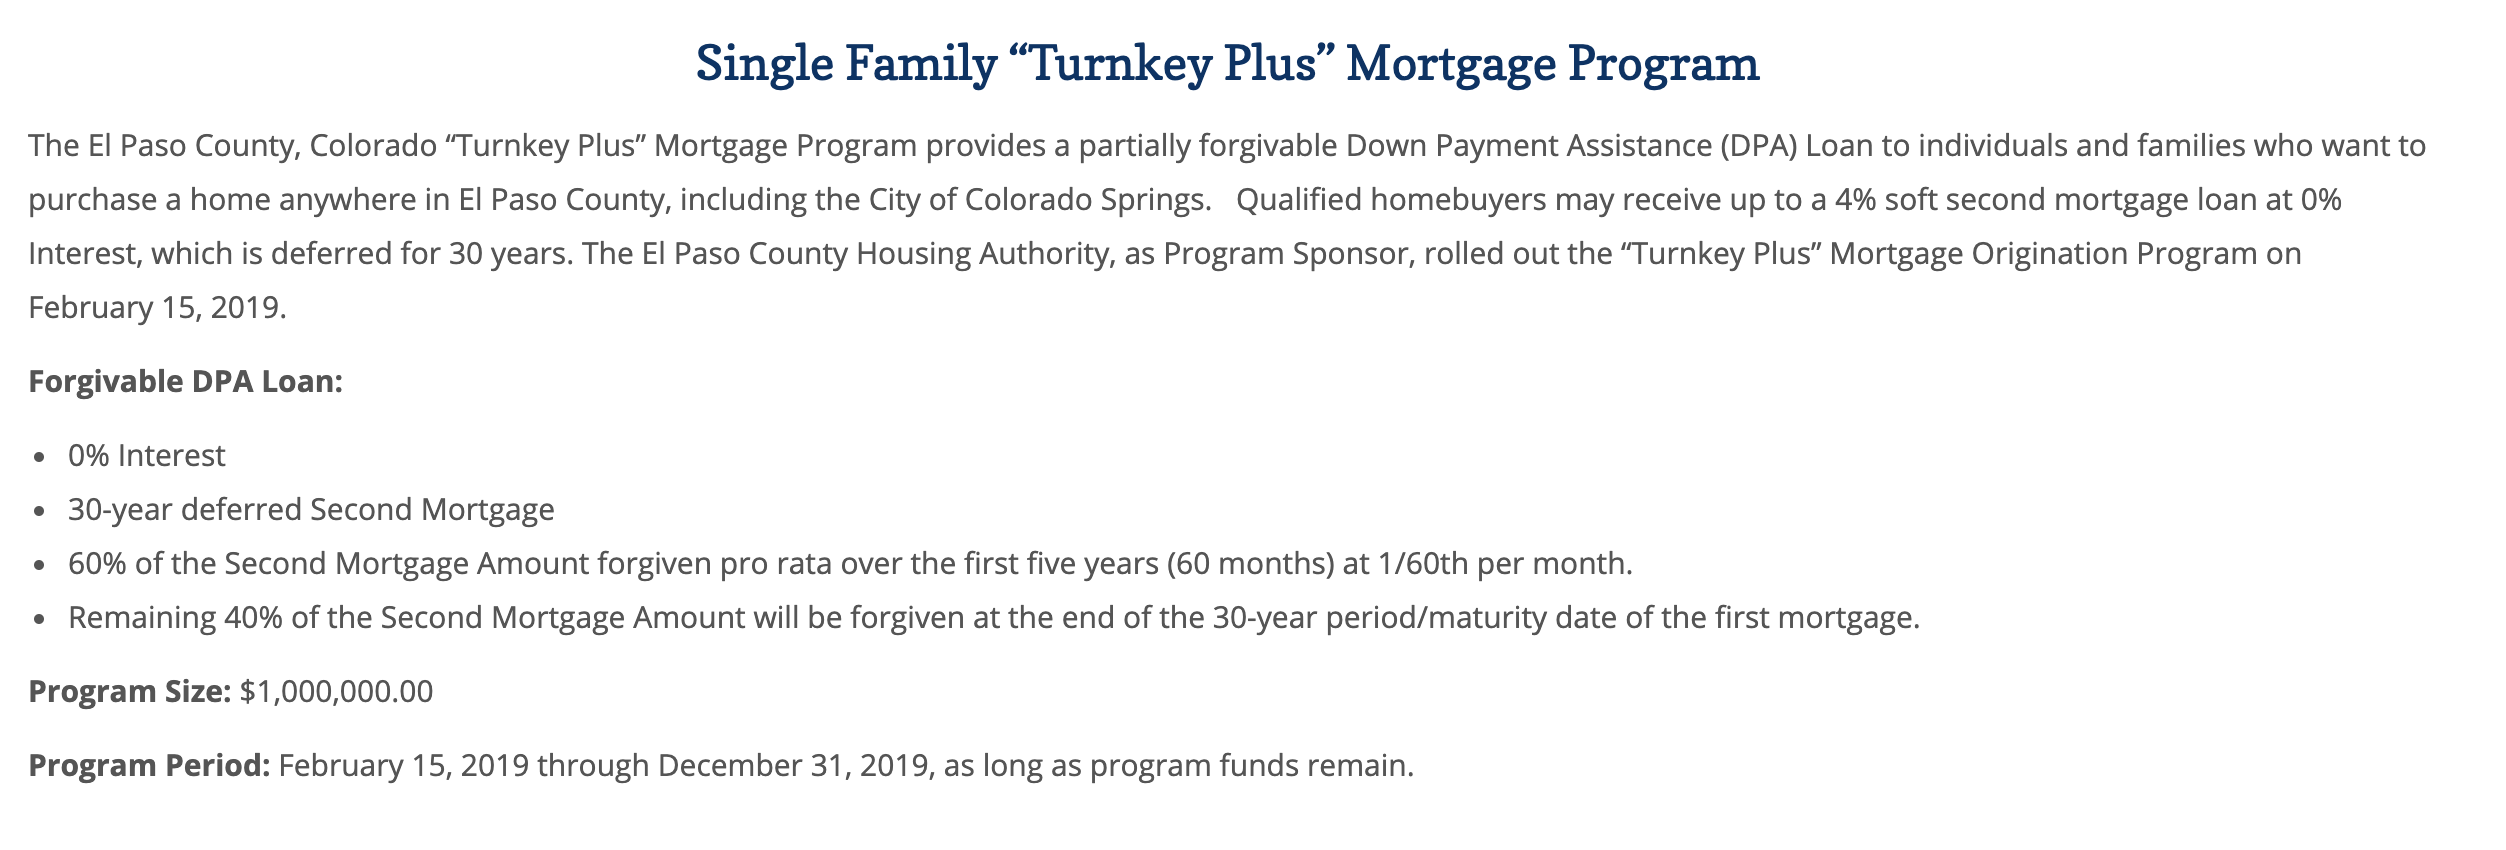 El Paso County Turnkey Mortgage Program